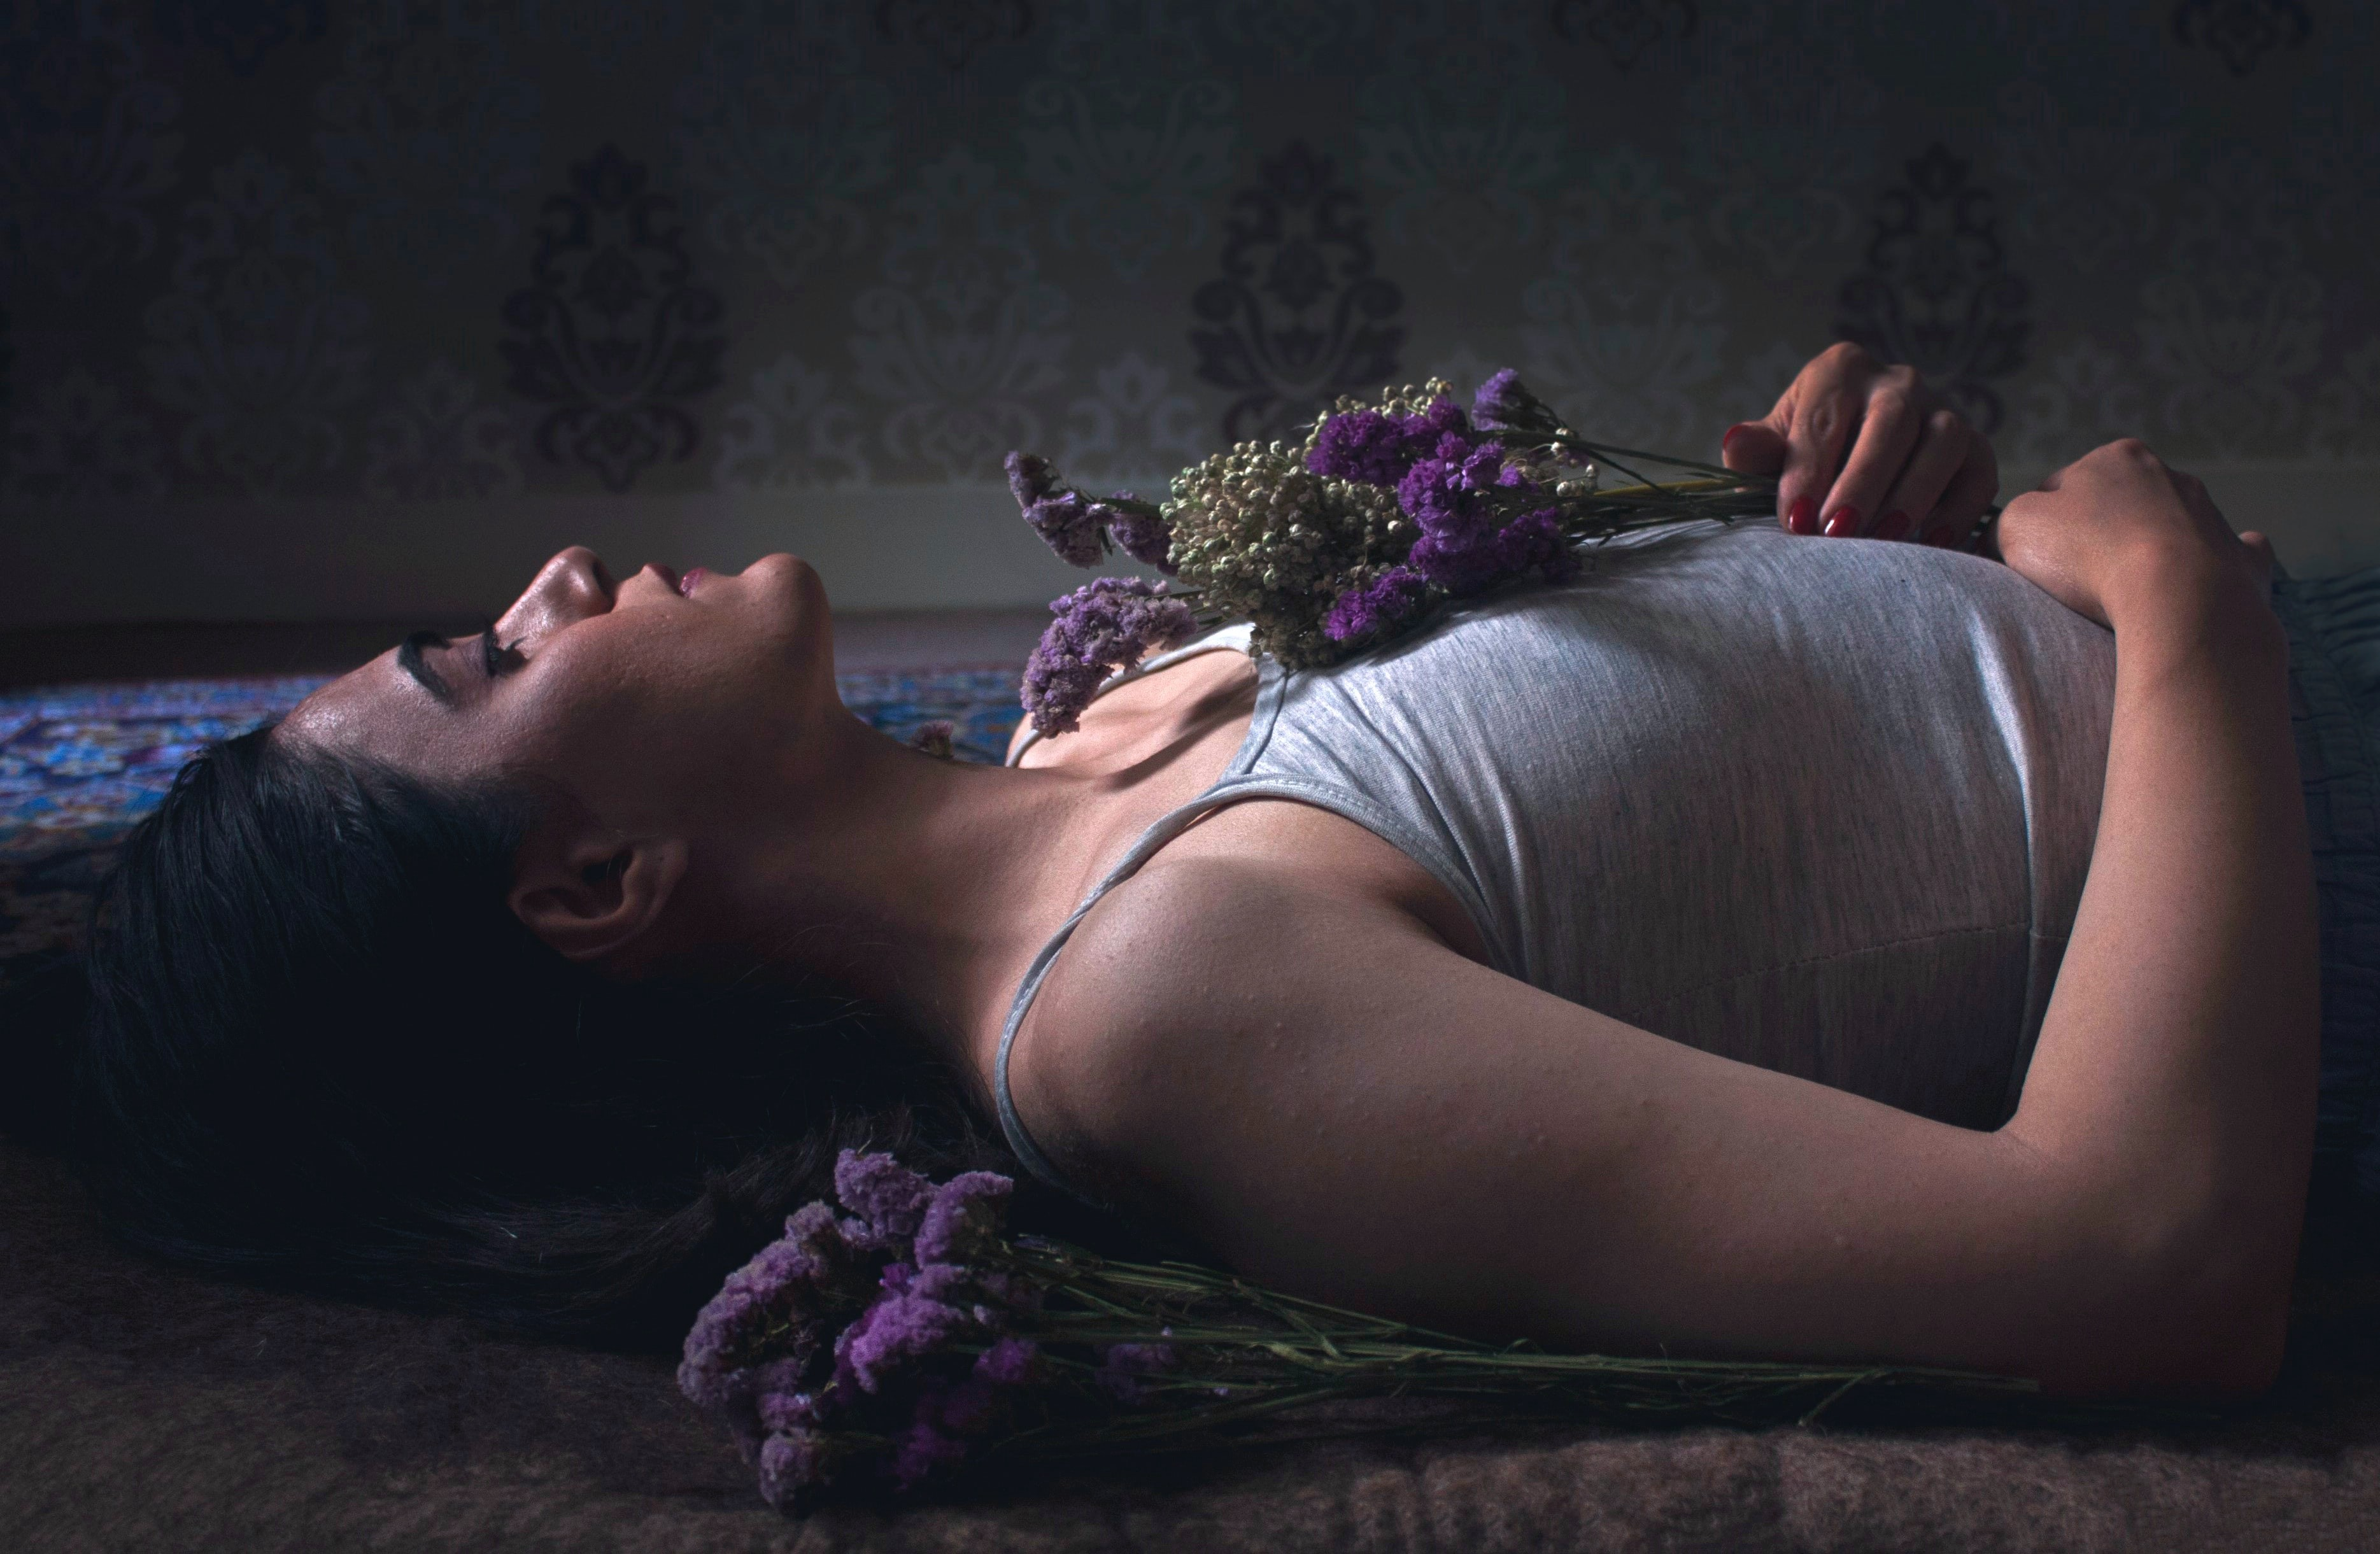 Young woman holding flowers while lying on the floor